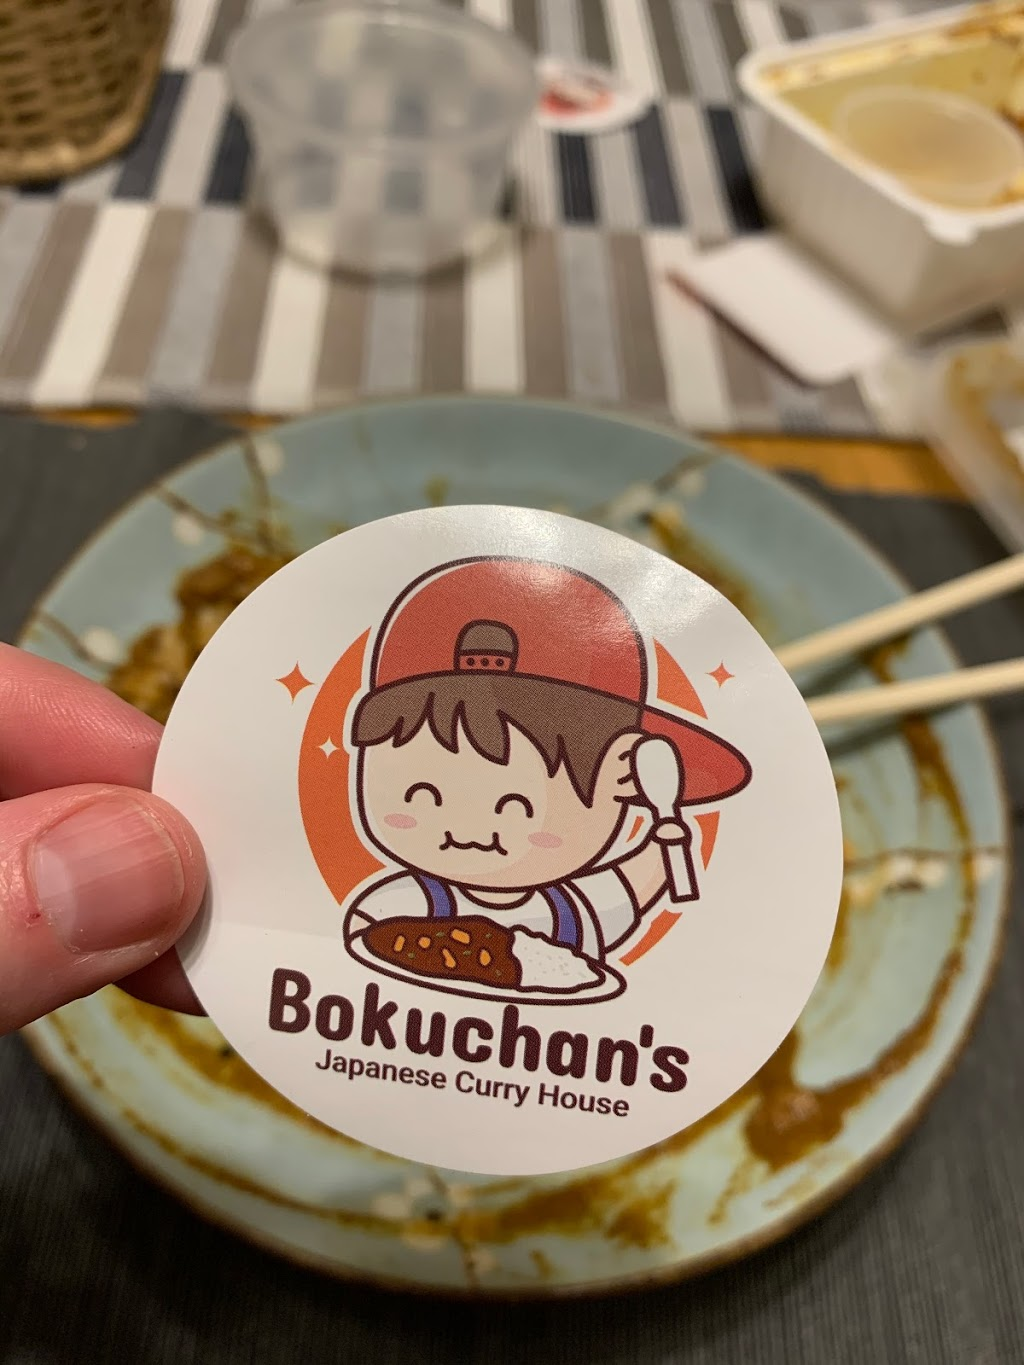 Bokuchans Japanese Curry House   restaurant   3517 N Spaulding Ave, Chicago, IL 60618, USA   3127304418 OR +1 312-730-4418